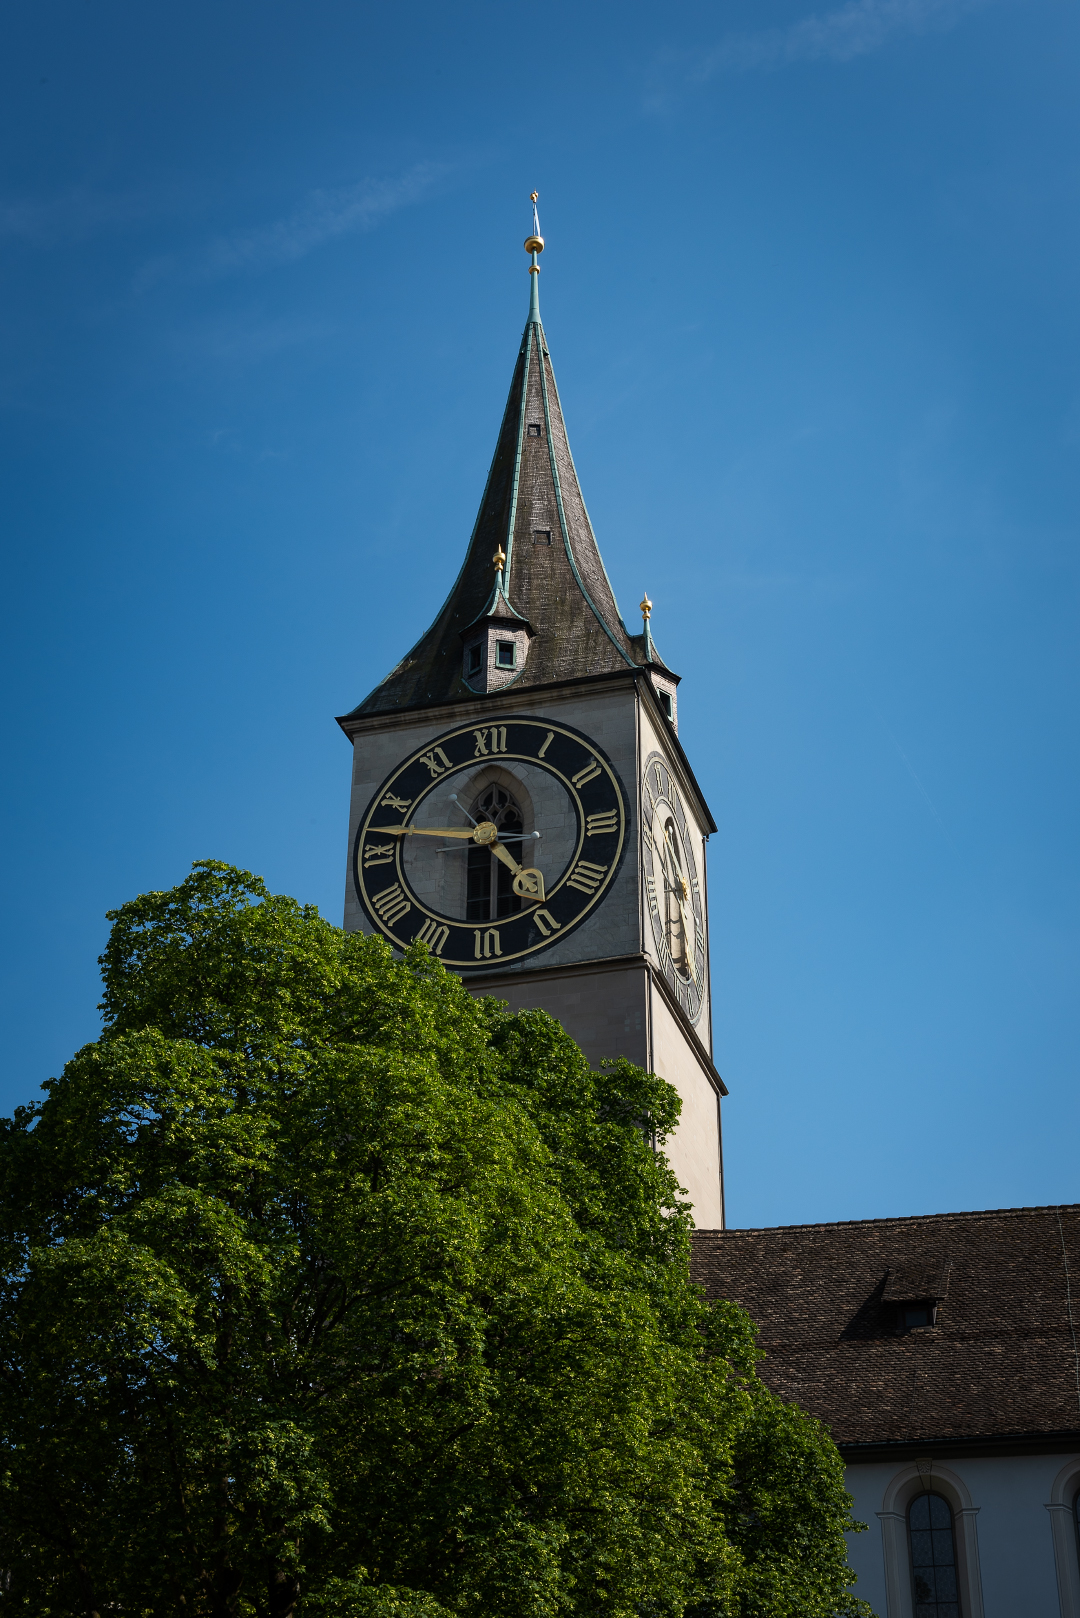 The tower of St. Peterskirche in Zurich with its iconic clock face.